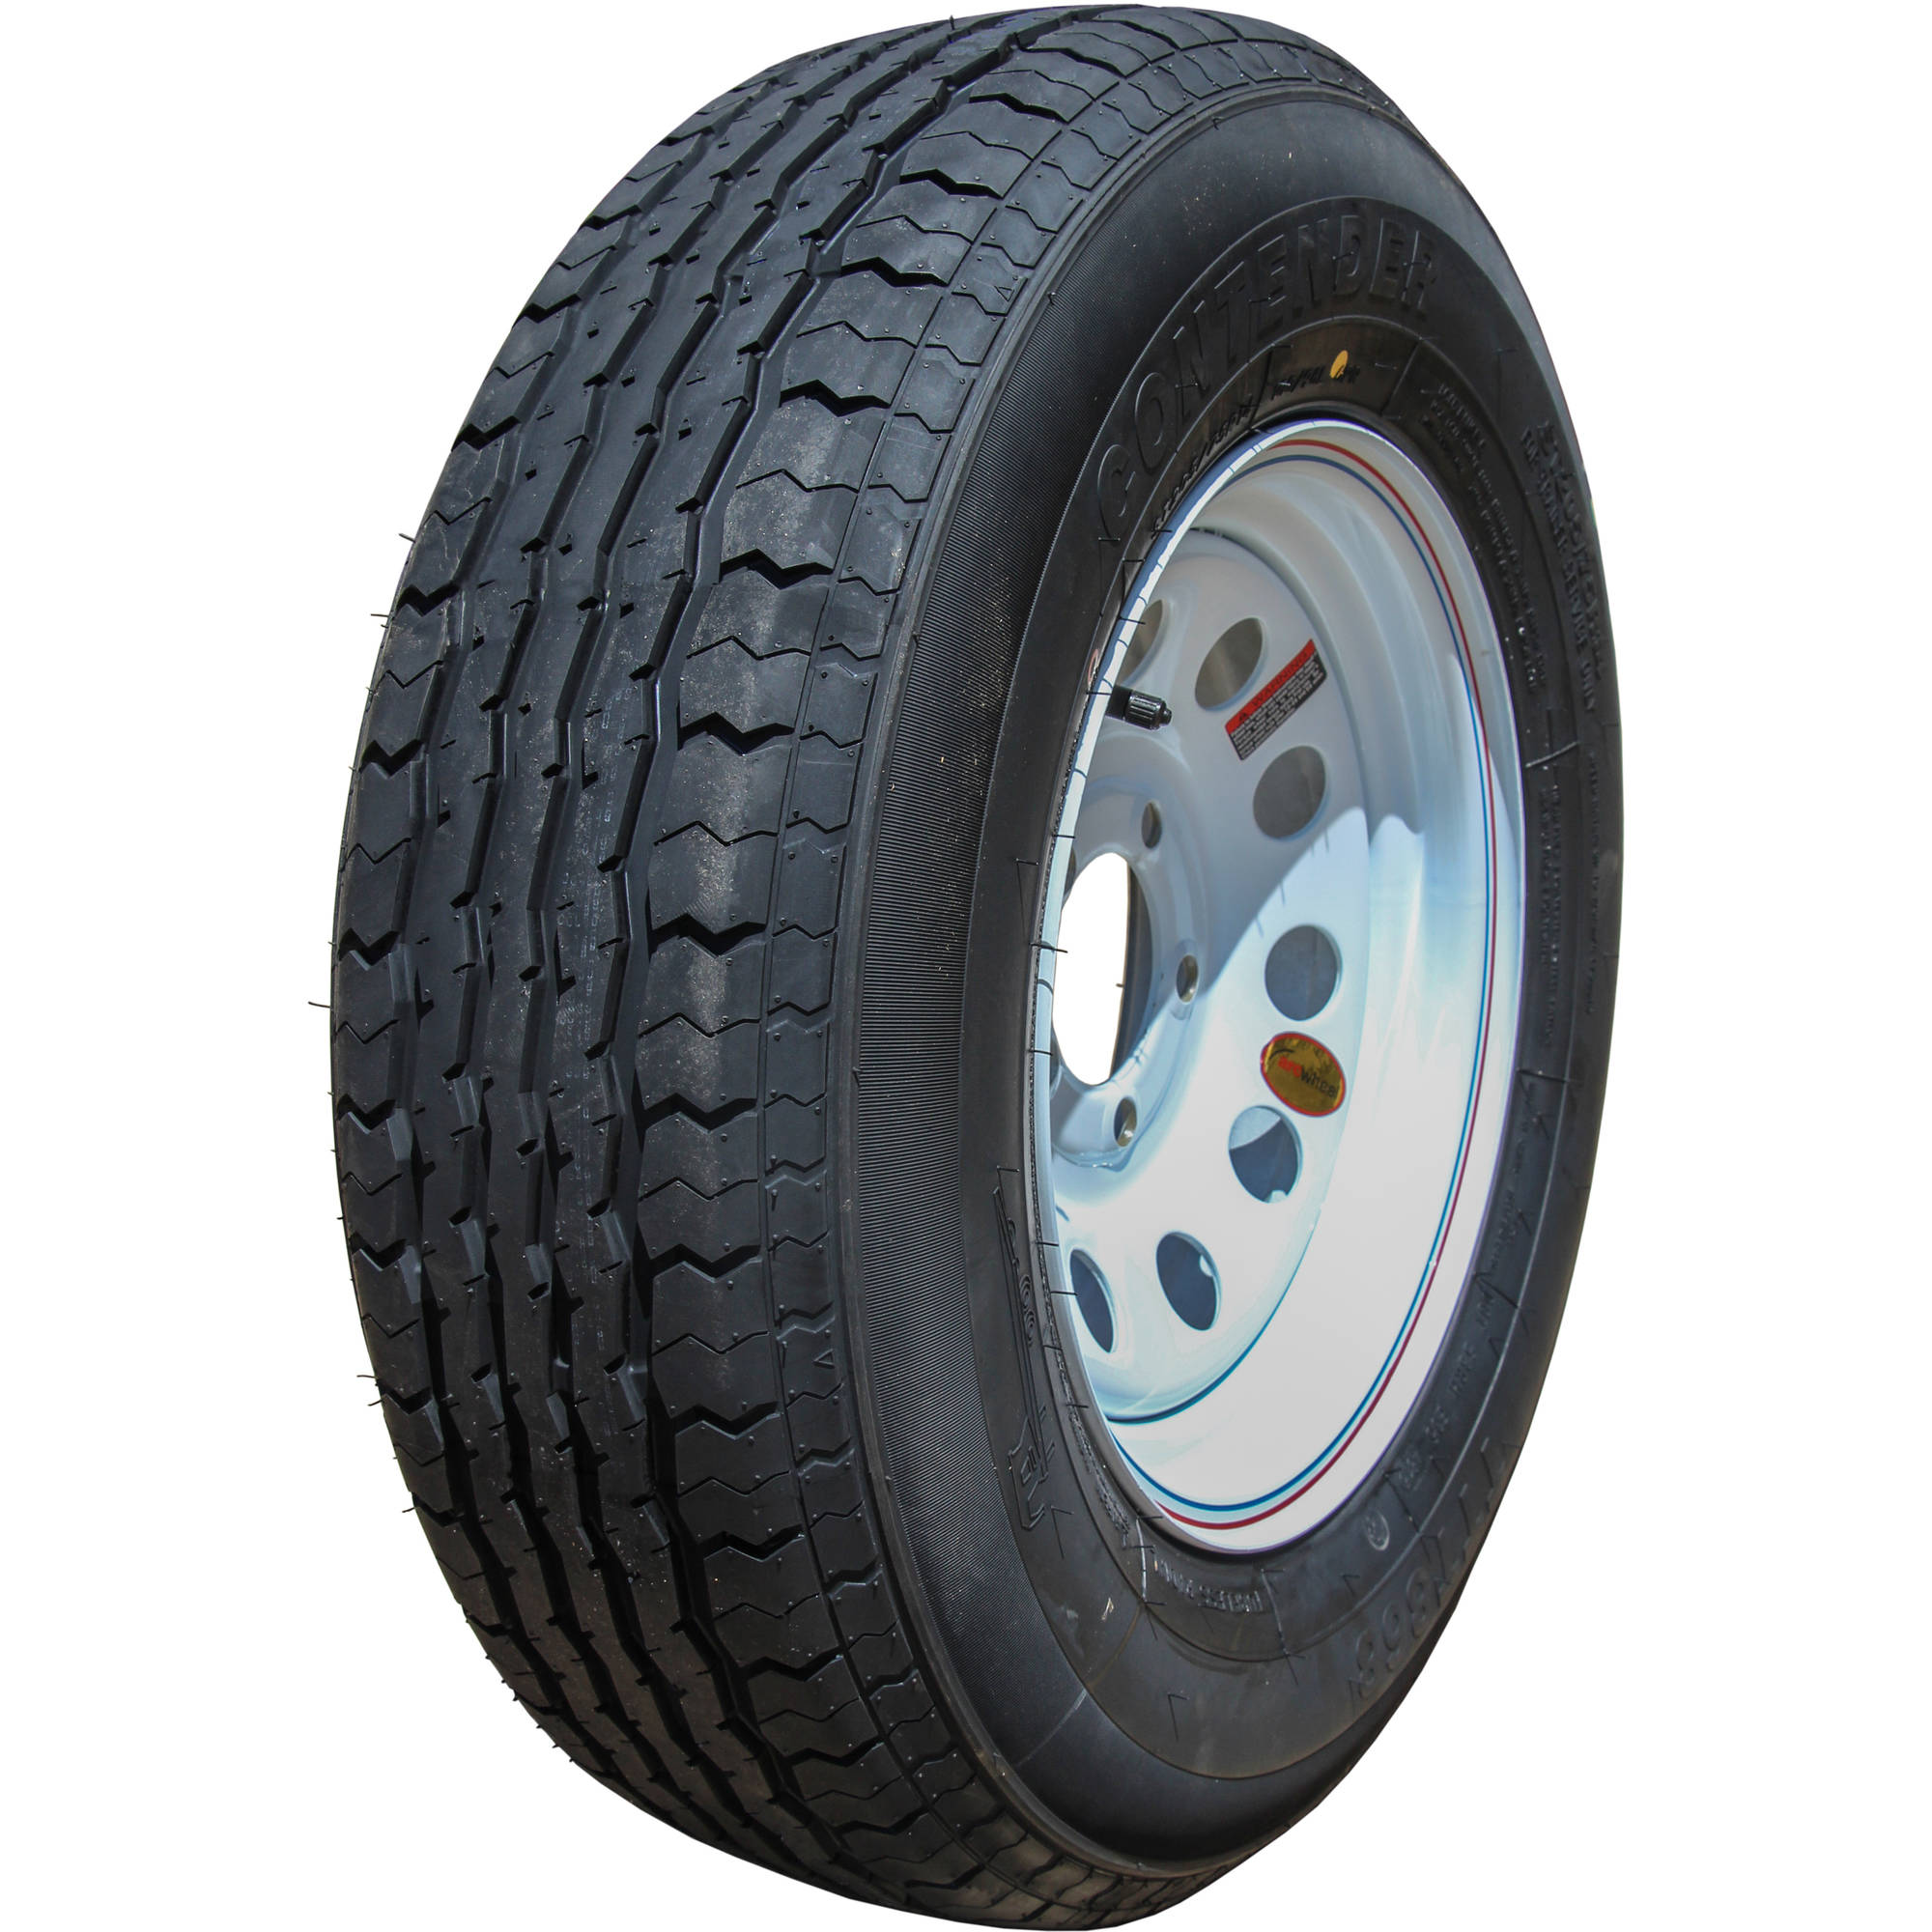 CONTENDER ST205 75R14, Load Range C, Trailer Tire (Tire Only) by Taskmaster